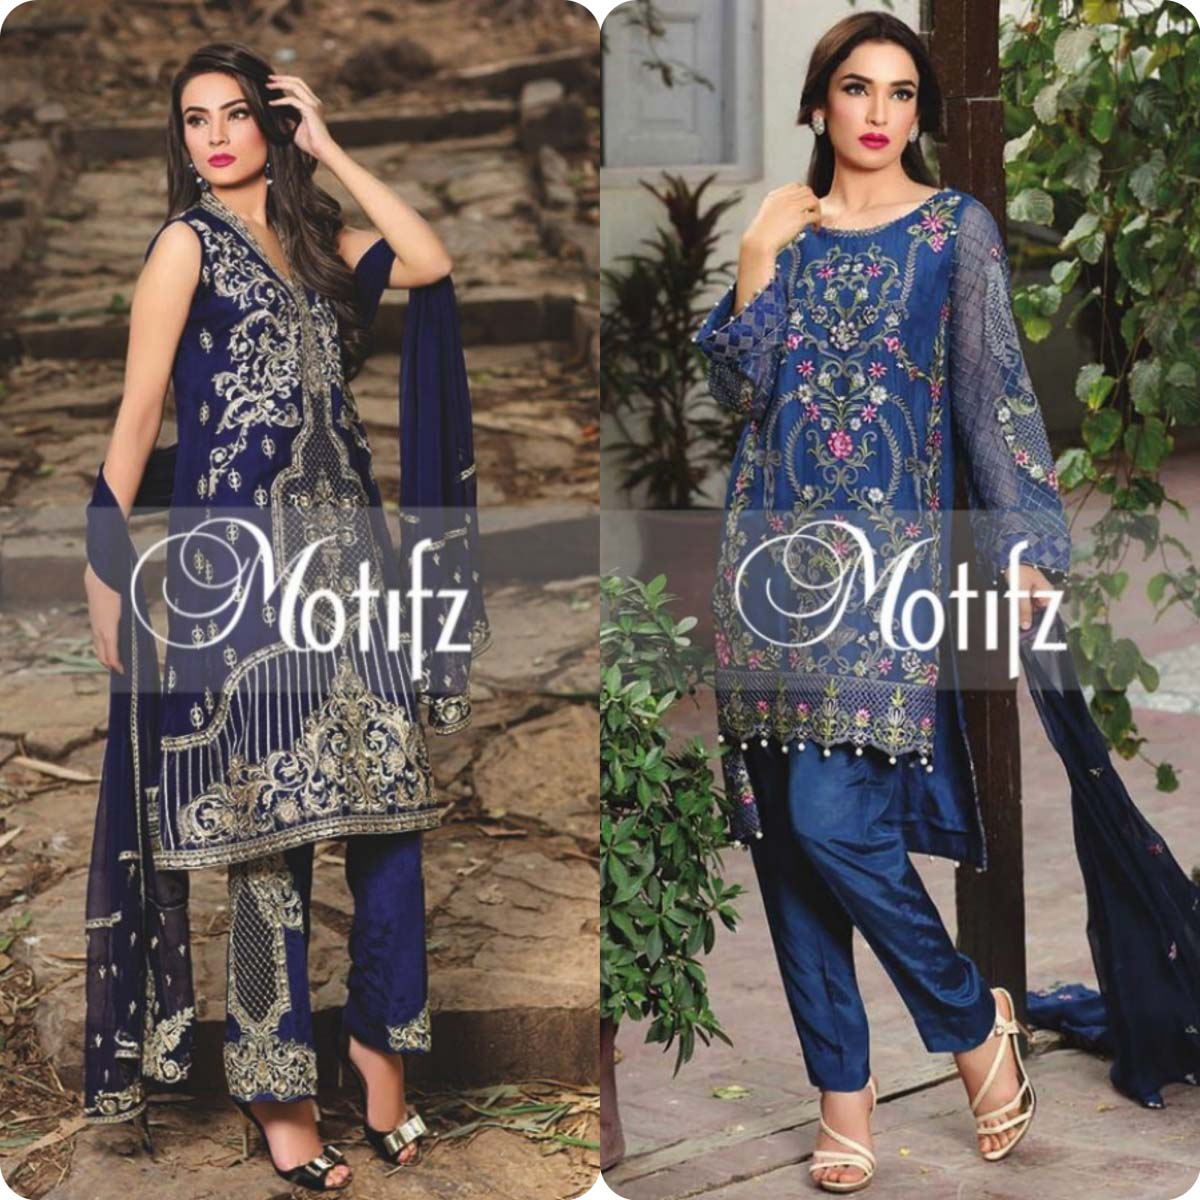 Motifz embroidered dresses